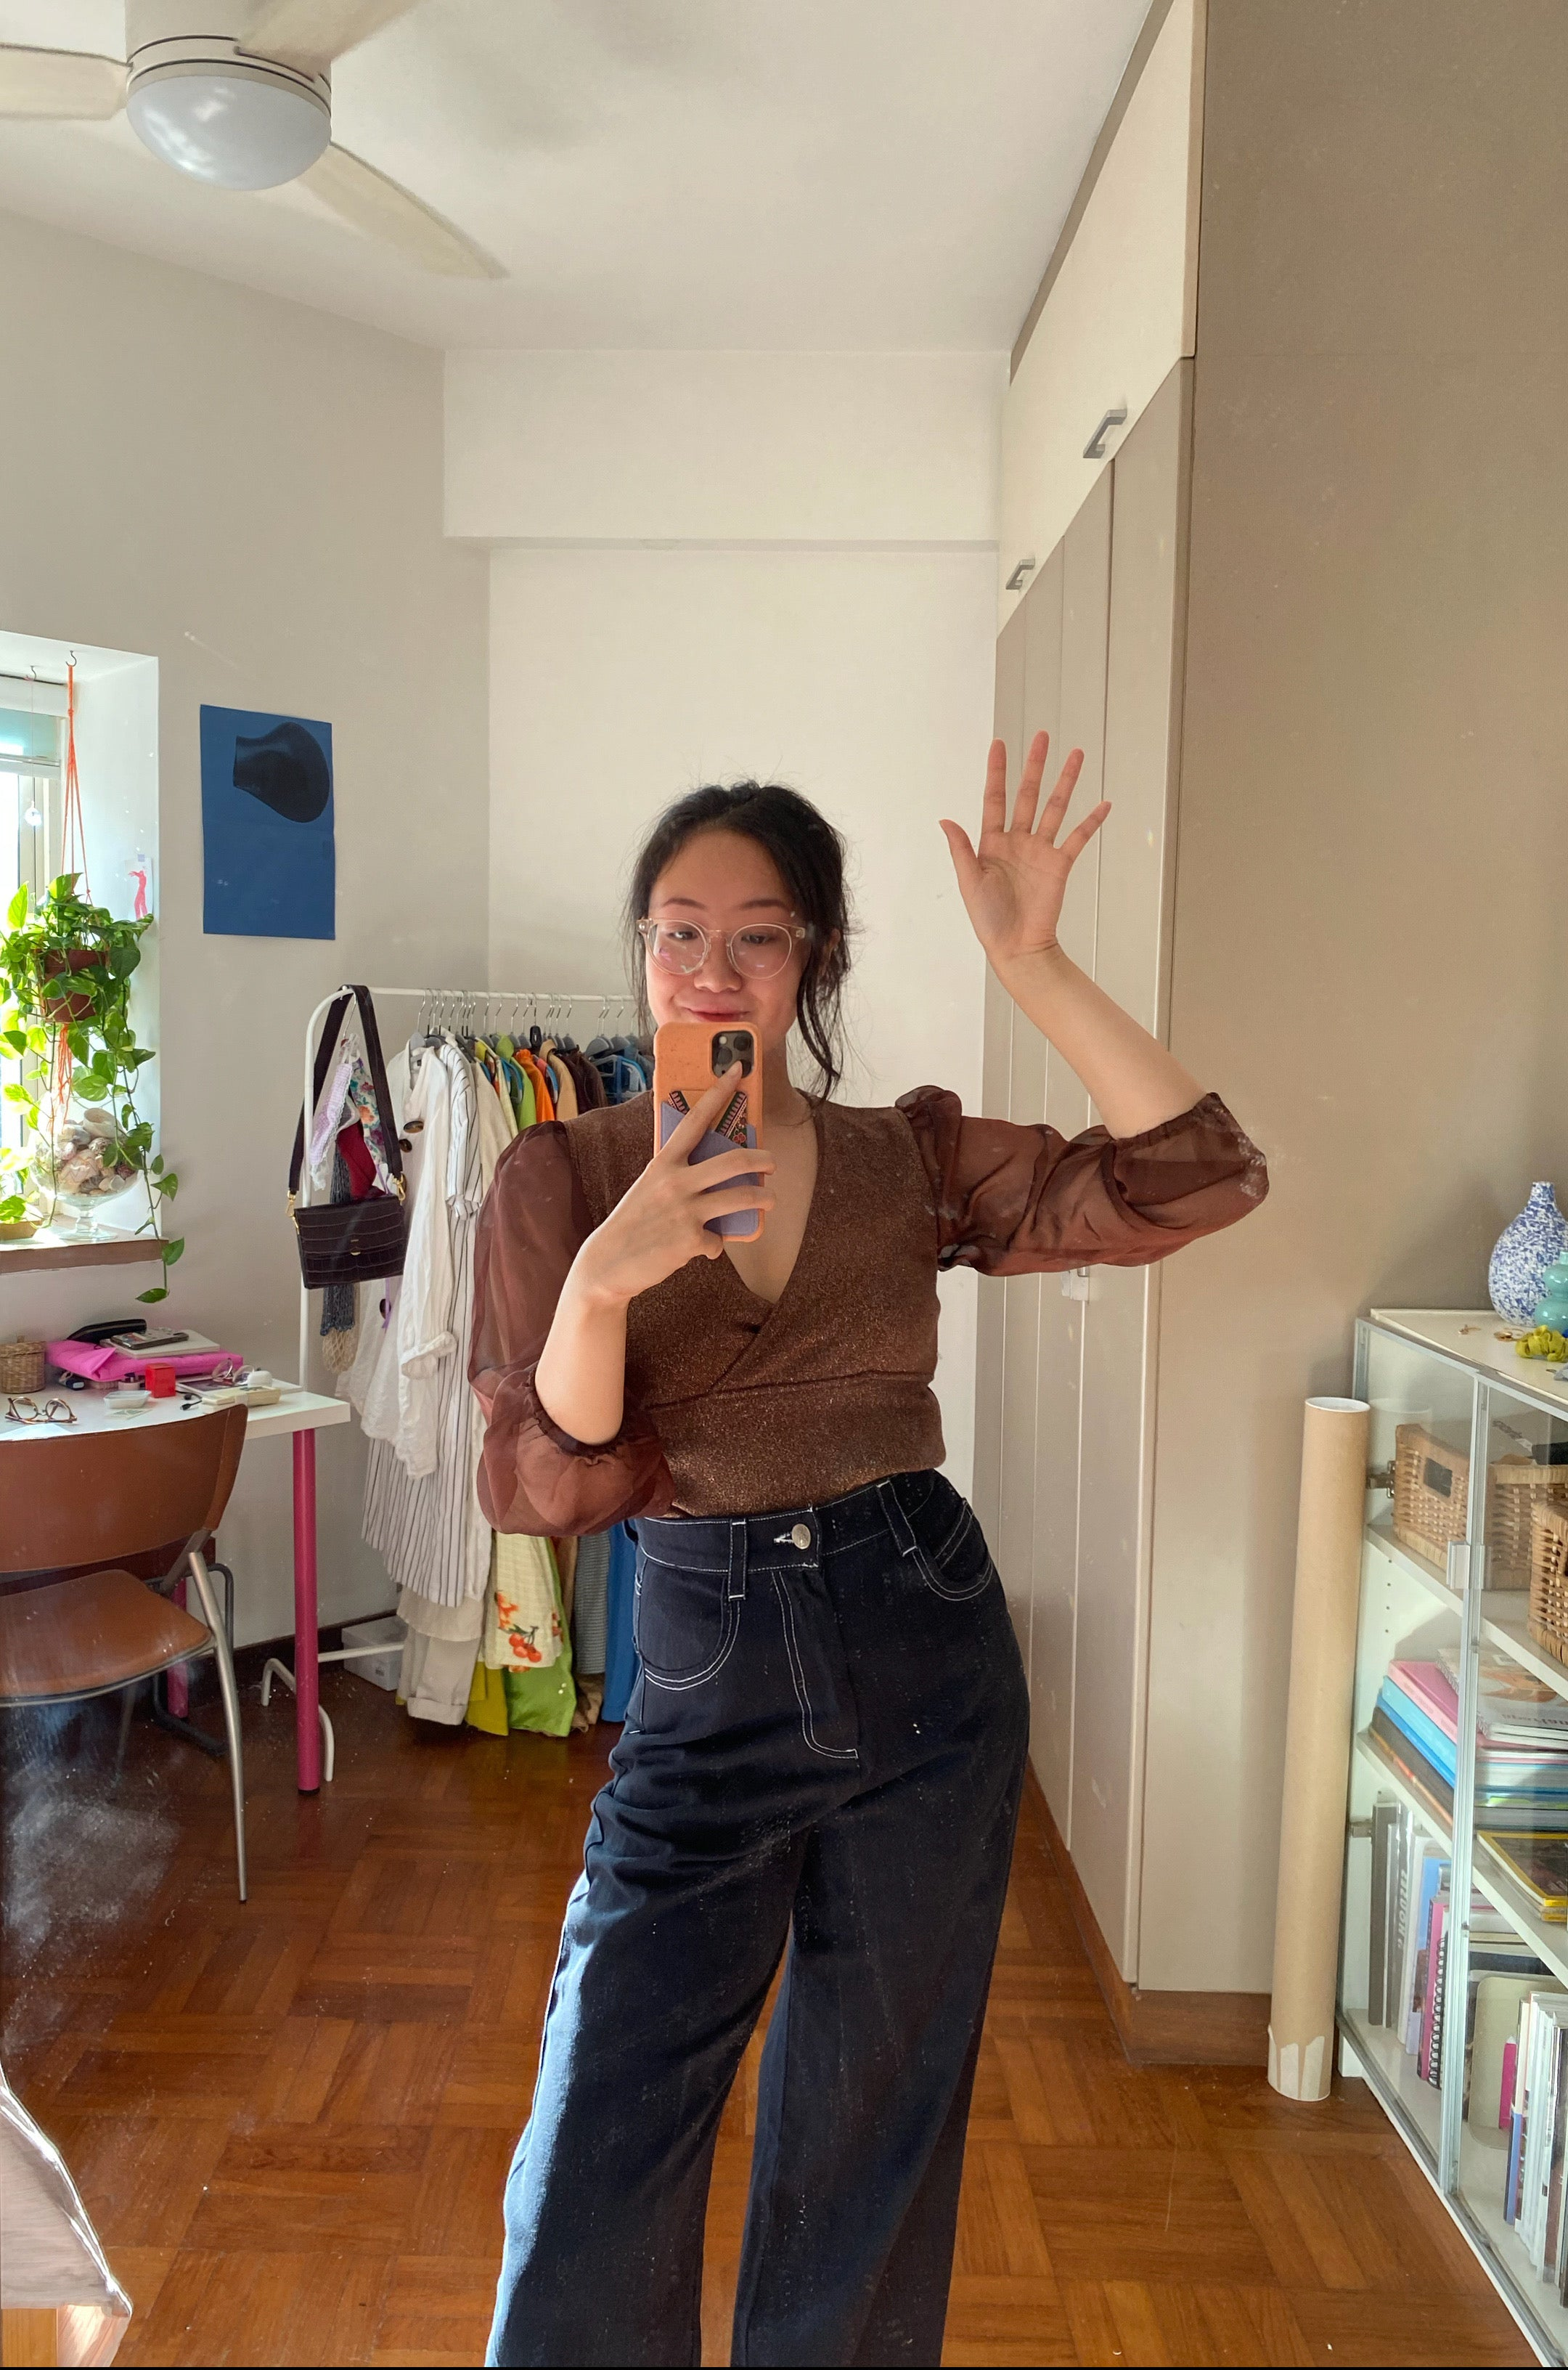 Weiqi Yap in thrifted brown glittery top and high-waisted denim from Lucy and Yak